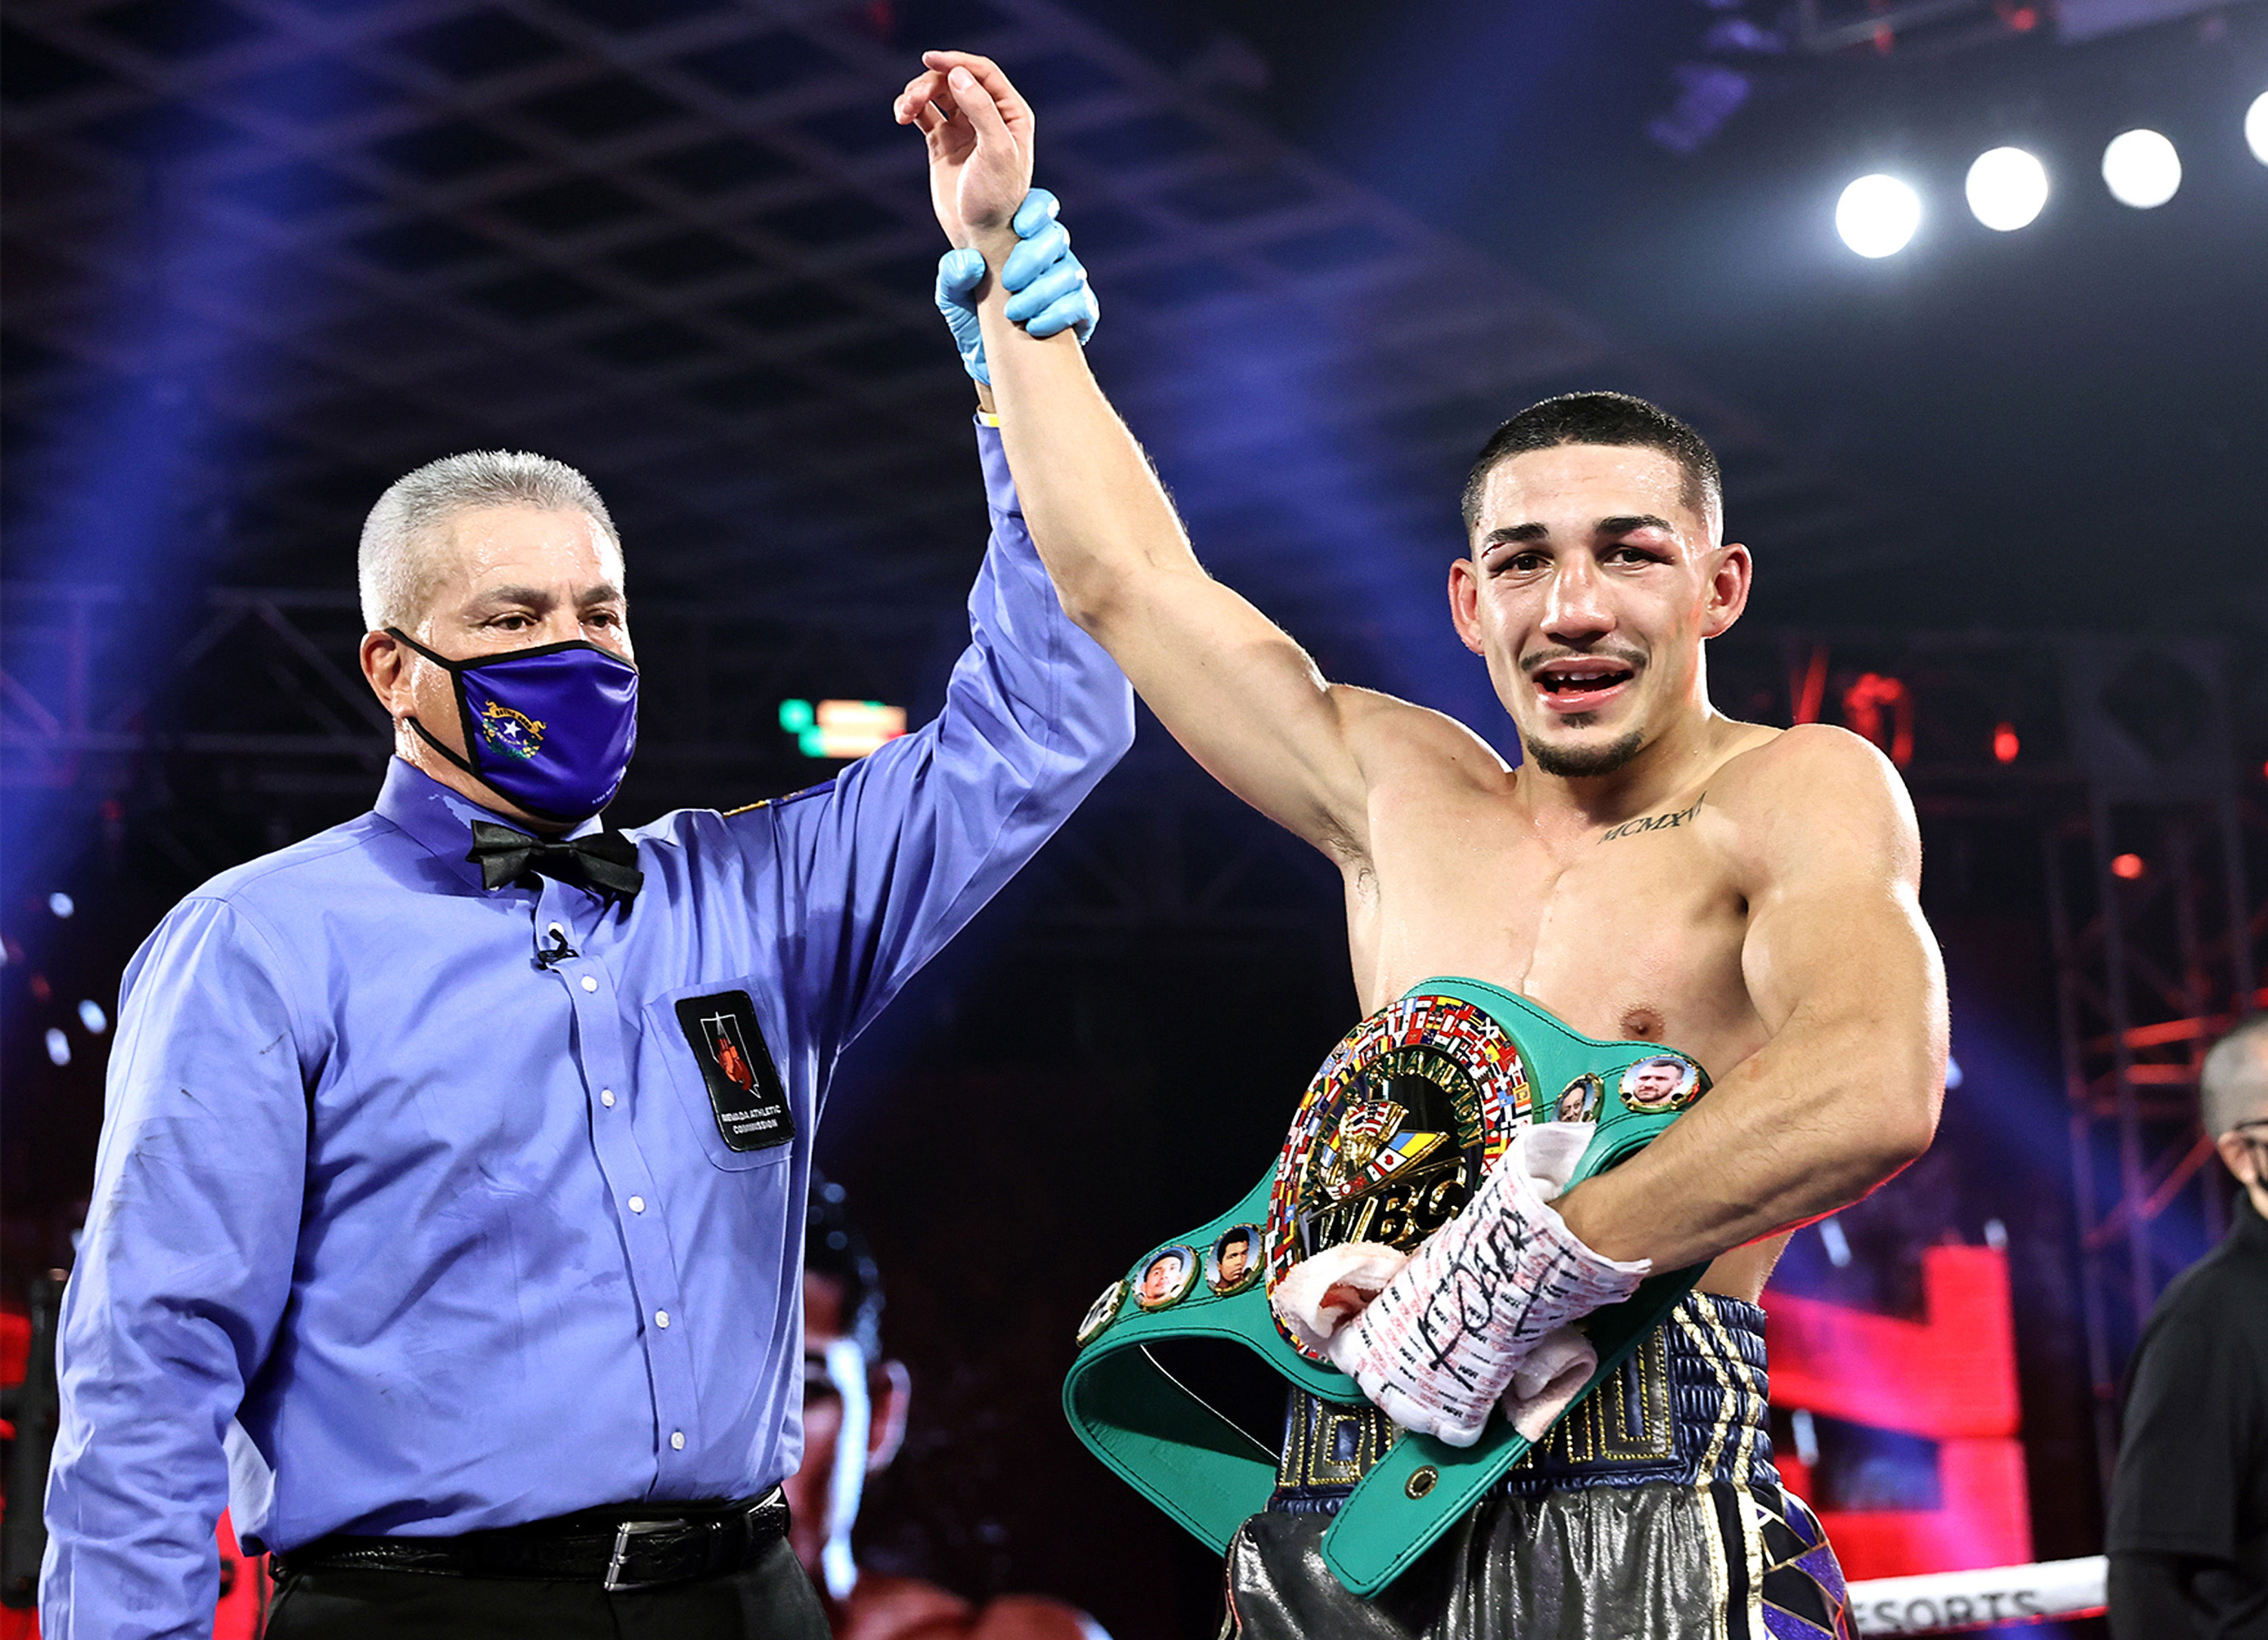 Boxer Teófimo López has become the youngest four-belt champion in history